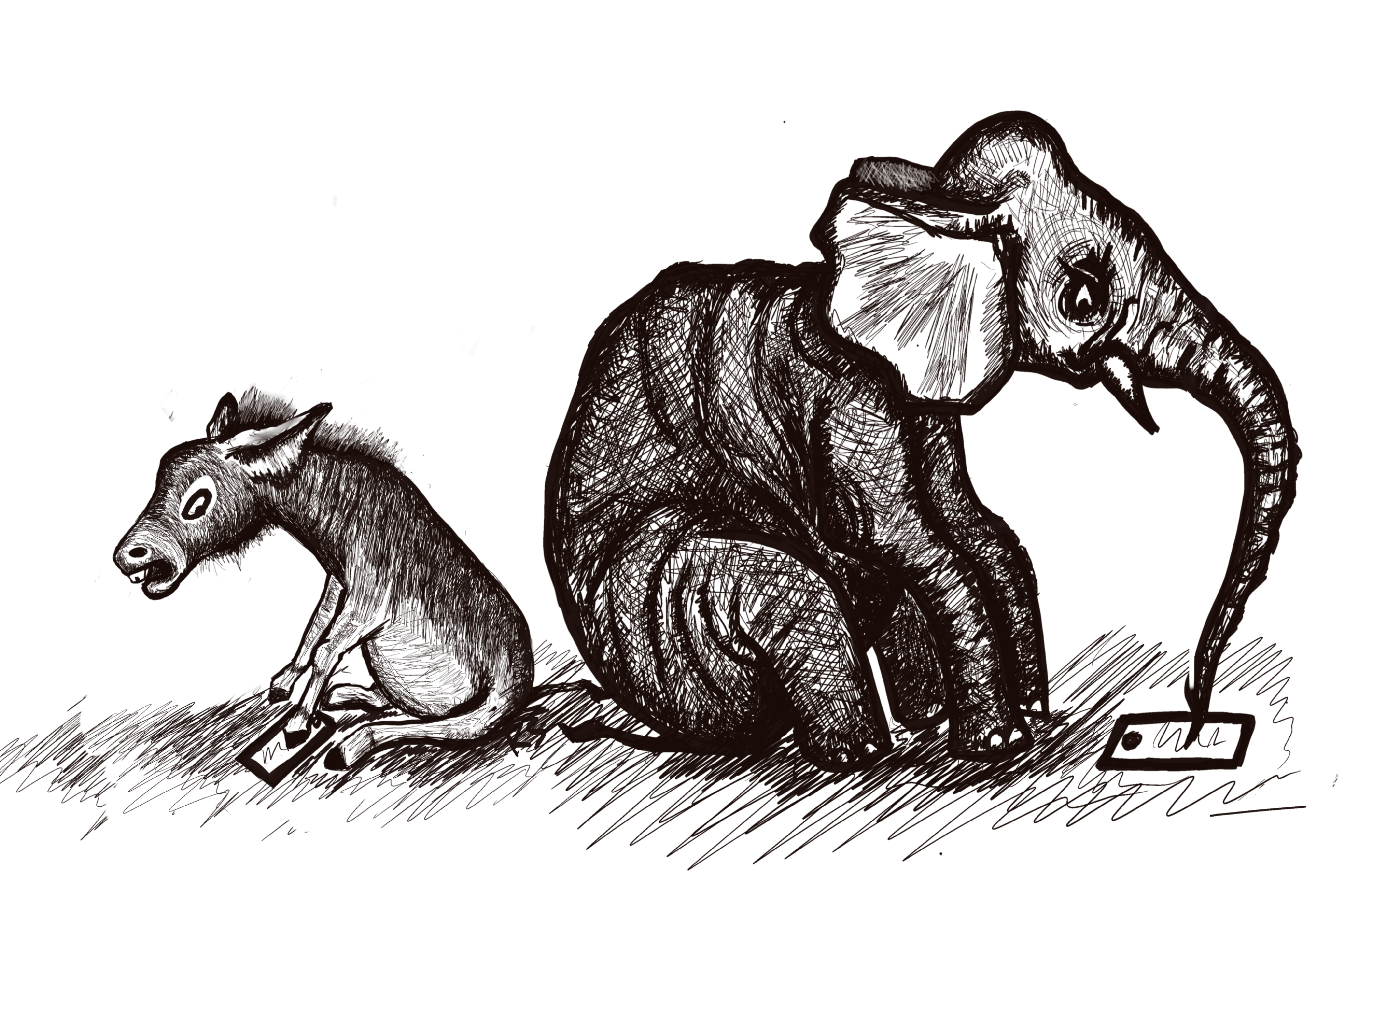 An elephant and donkey sitting back to back, staring angrily at electronic devices